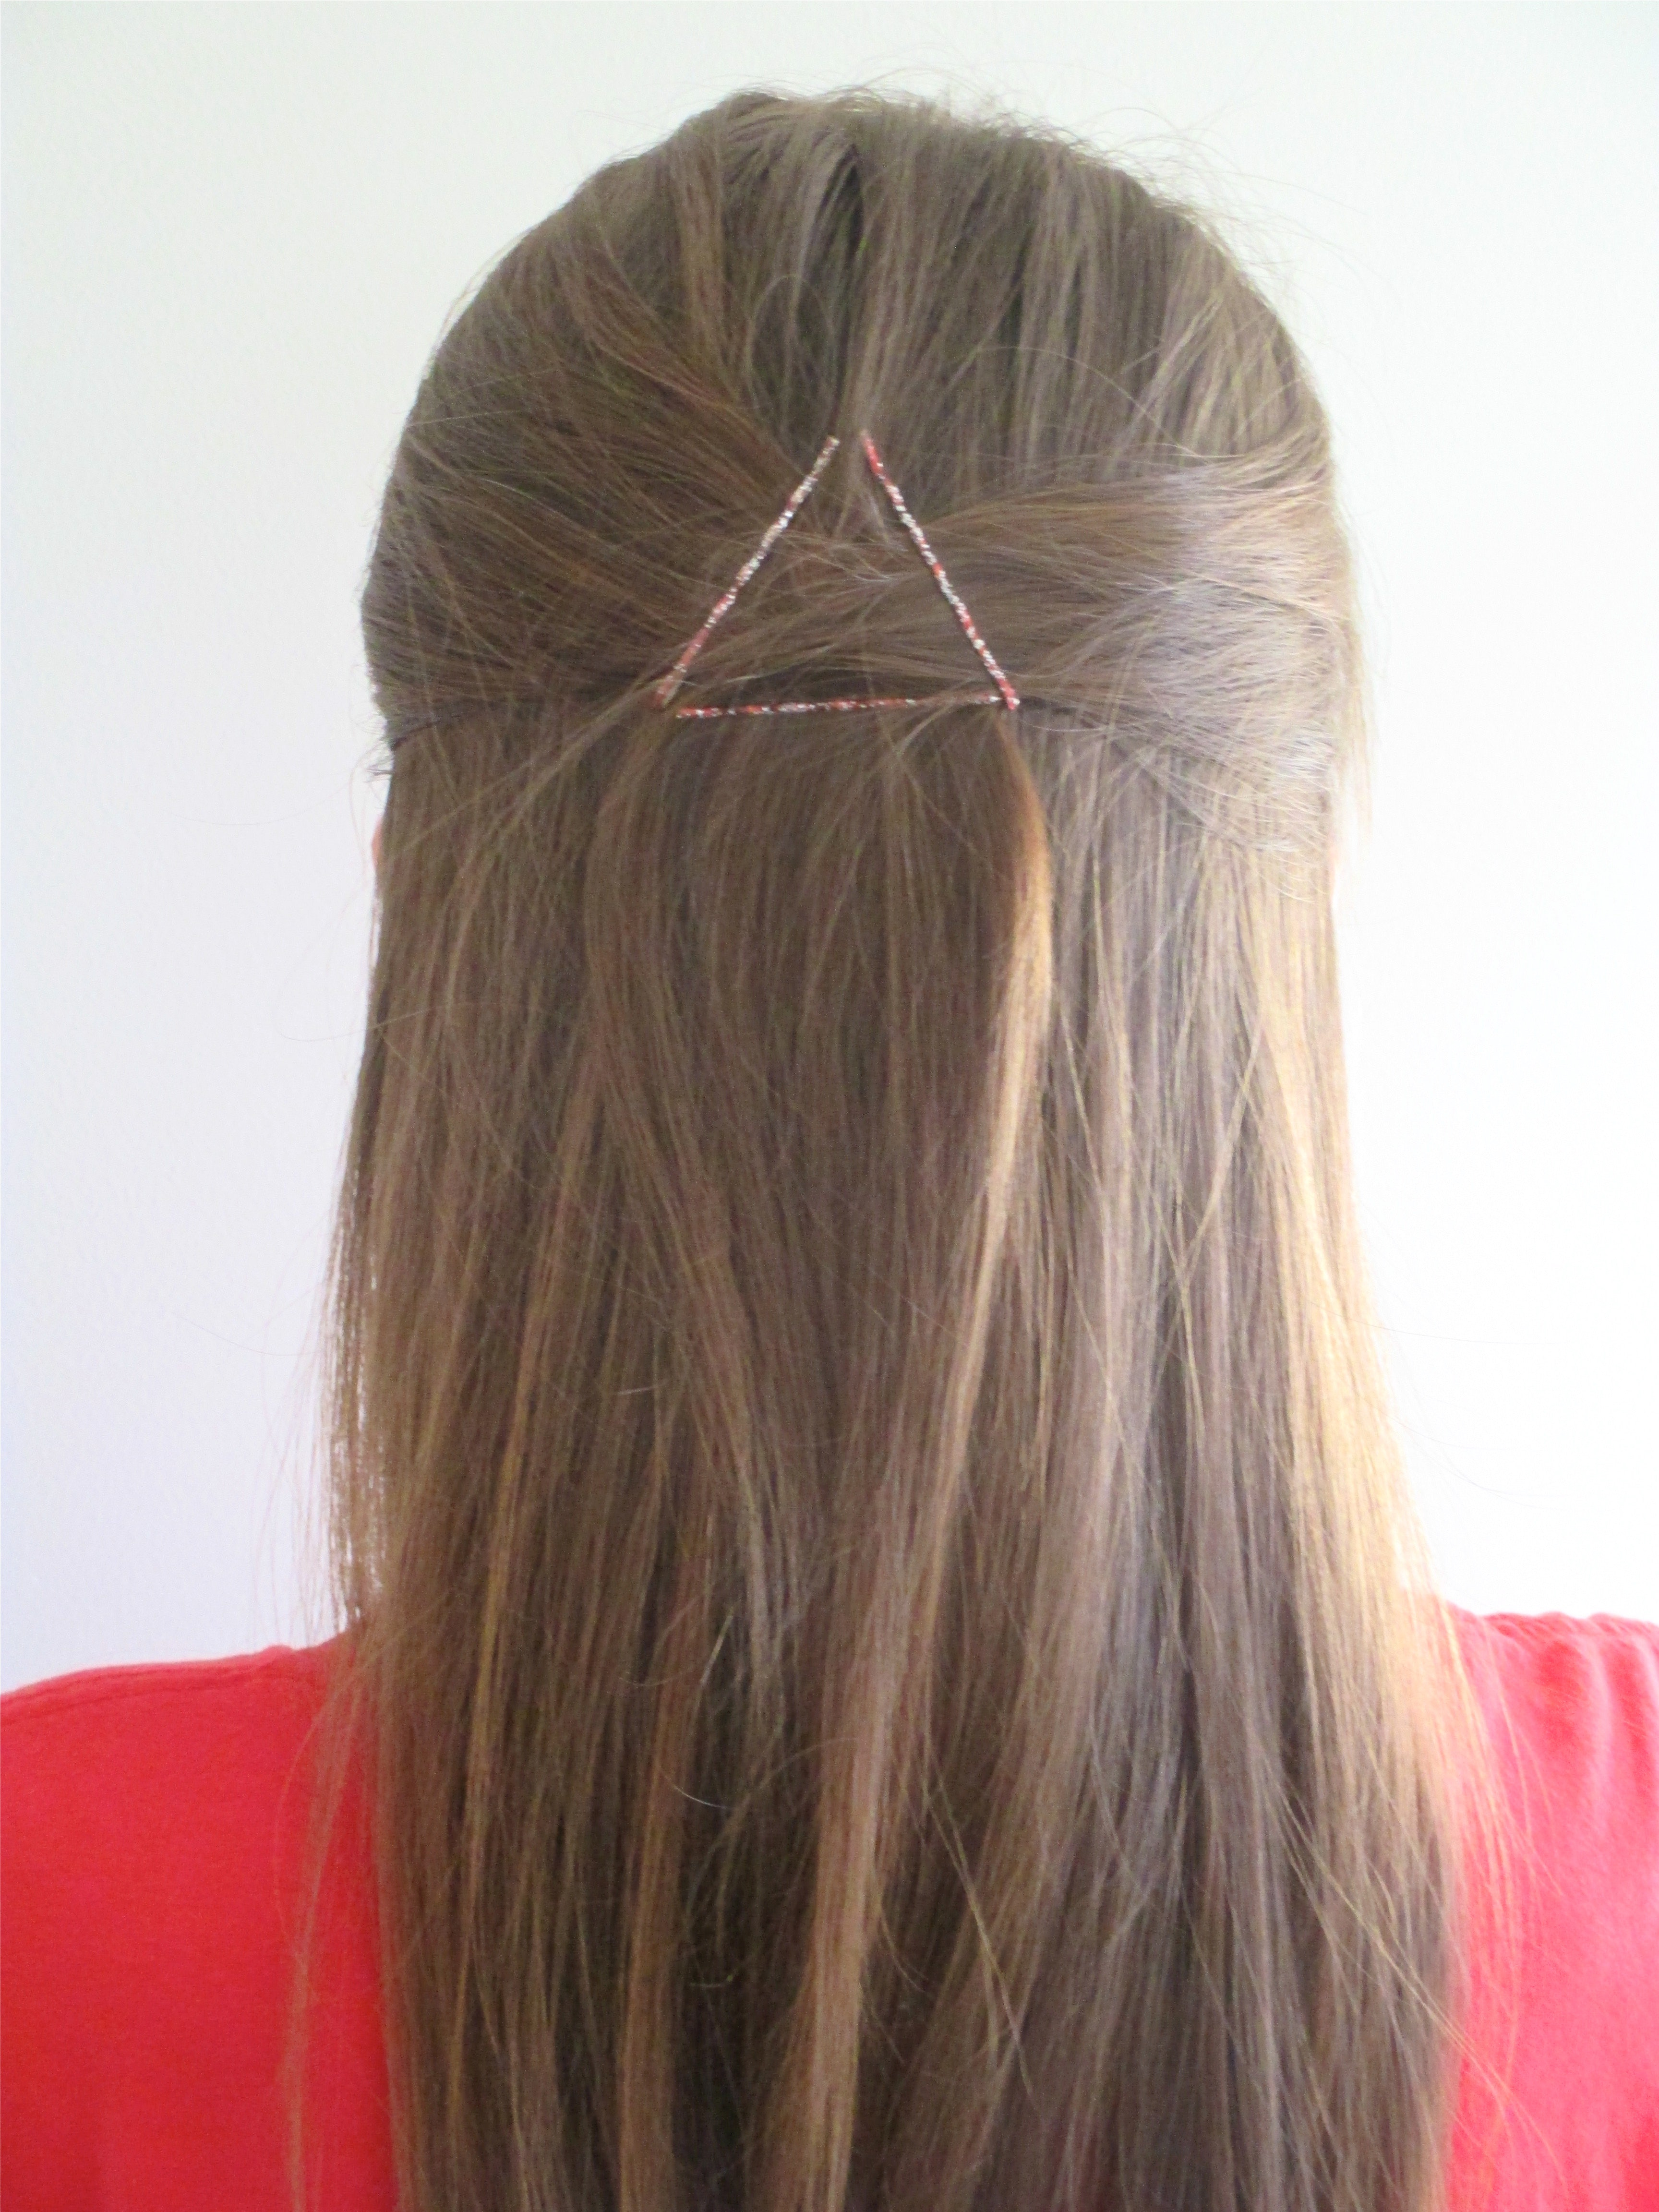 11 Cute And Easy Bobby-Pin Hairstyles Using Fewer Than 11 Bobby Pins